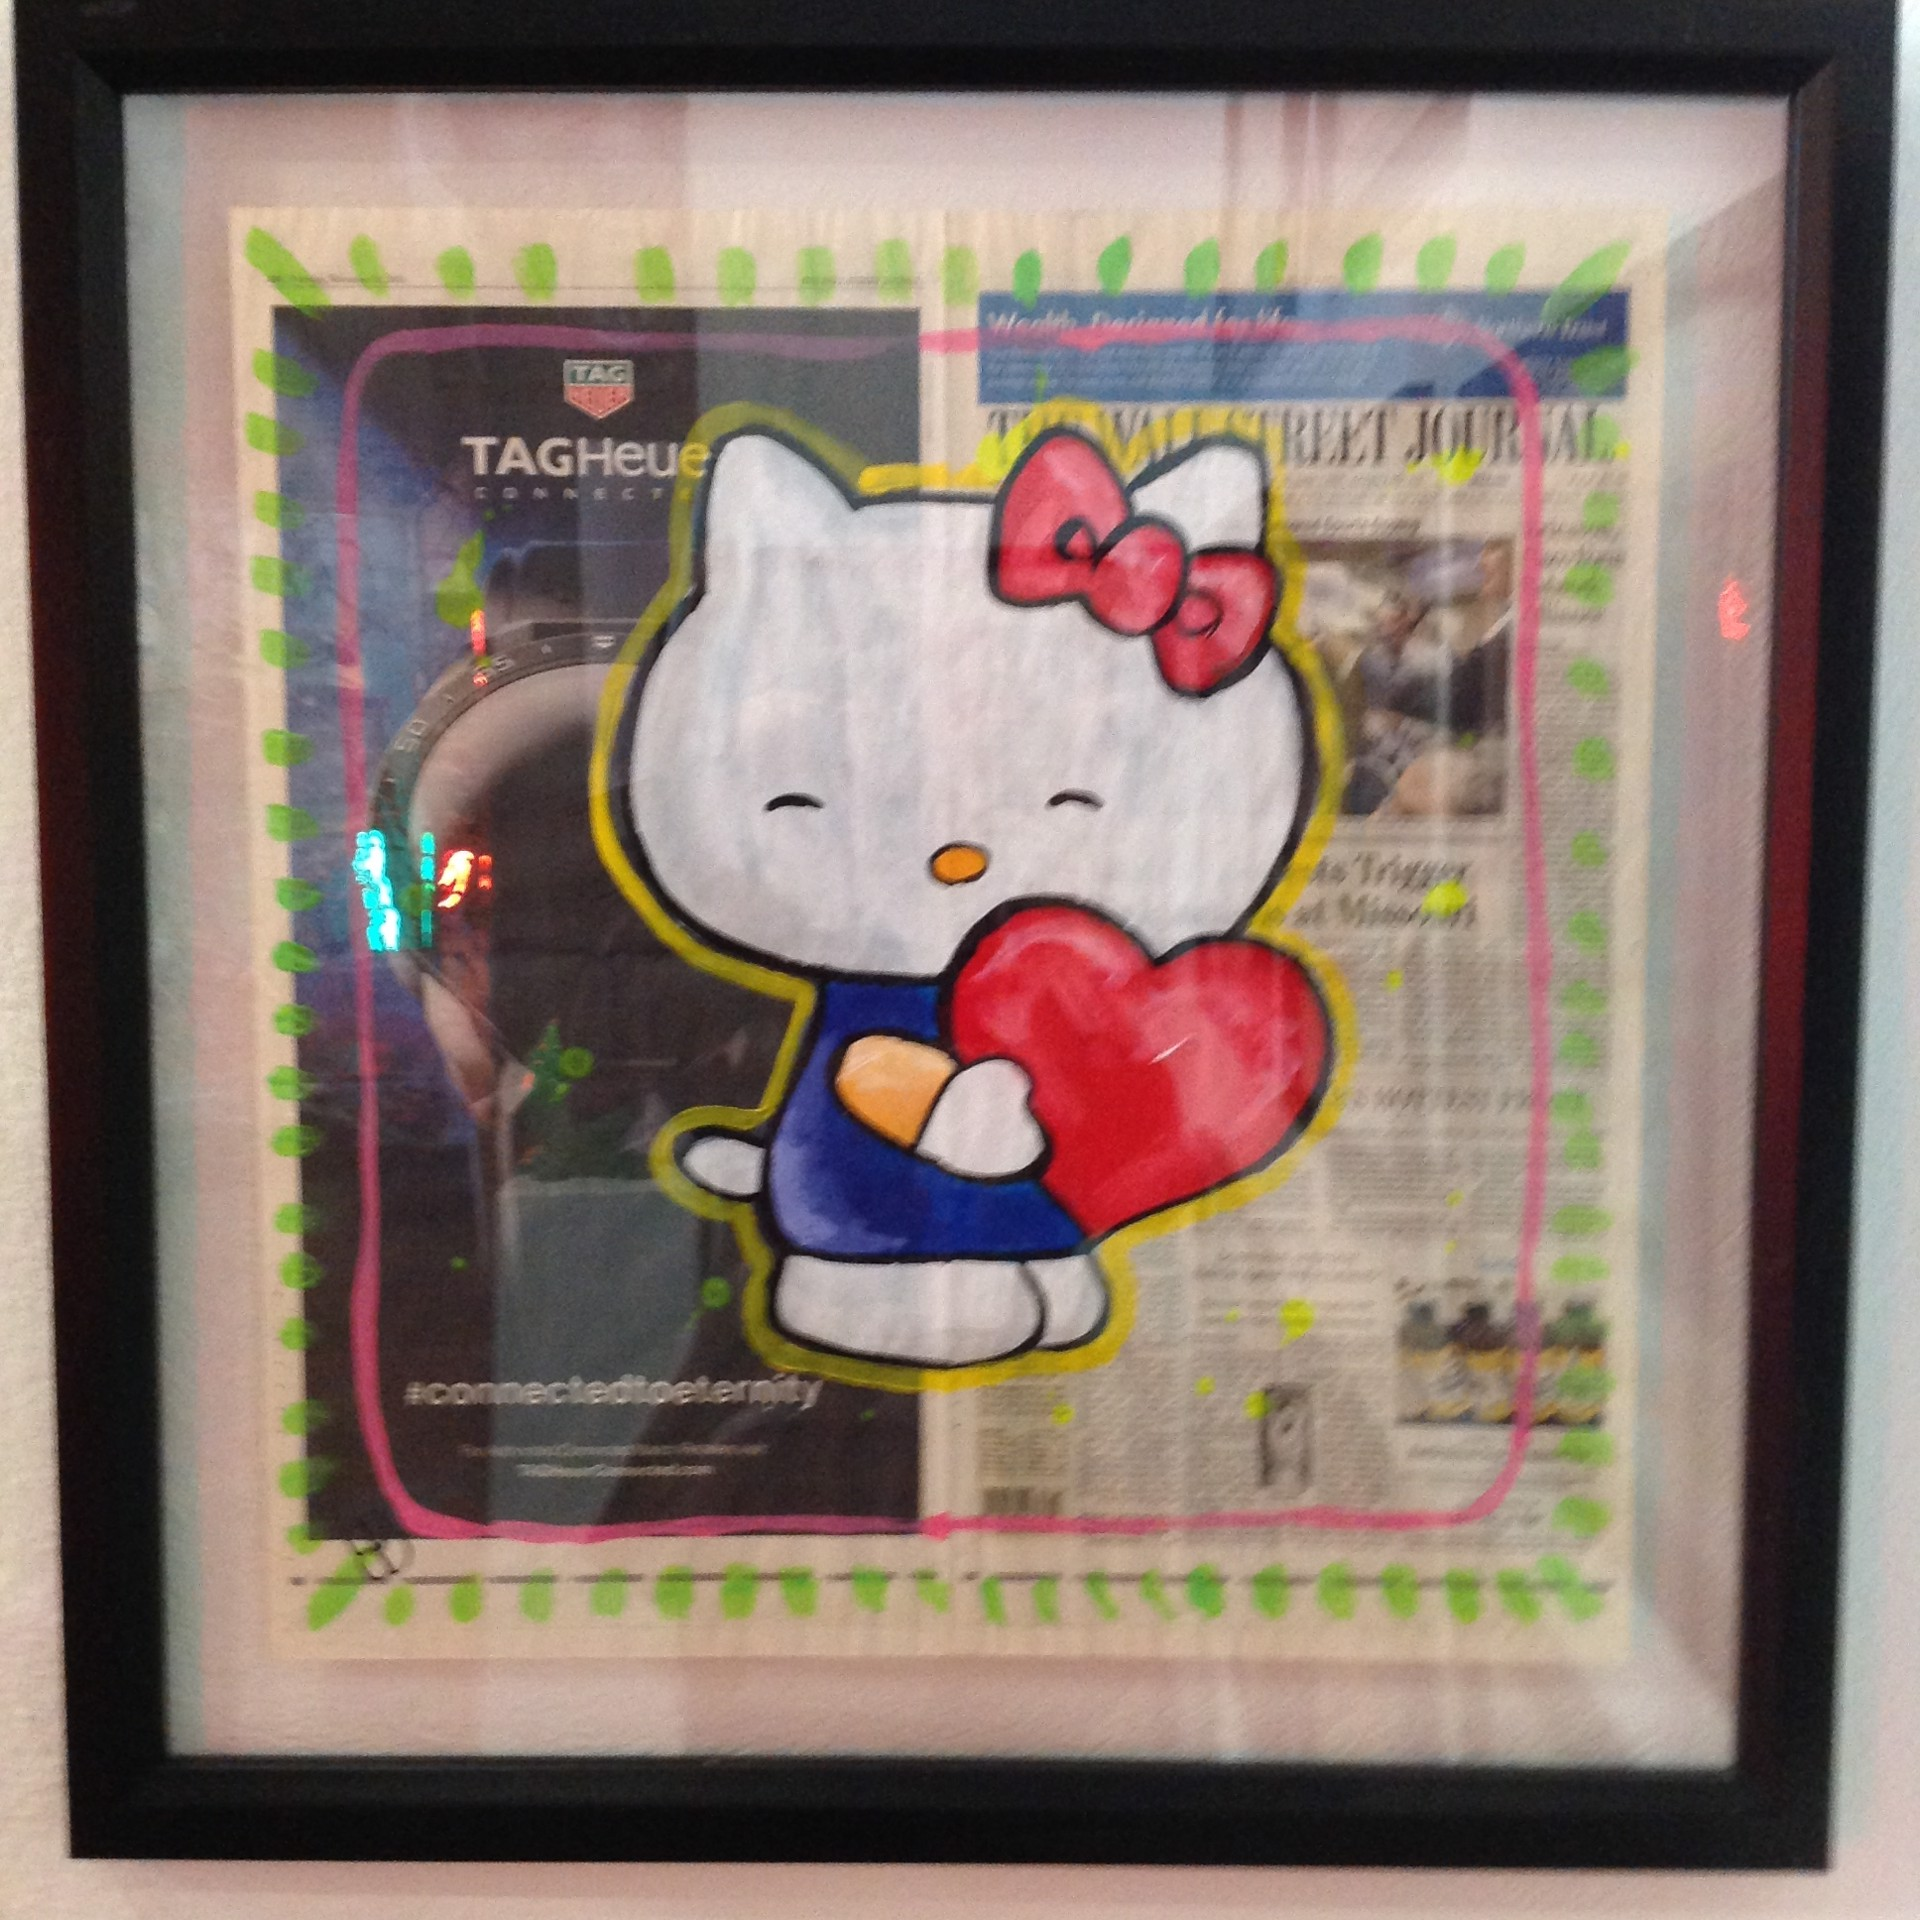 Wall Street Journal series Hello Kitty by Elena Bulatova